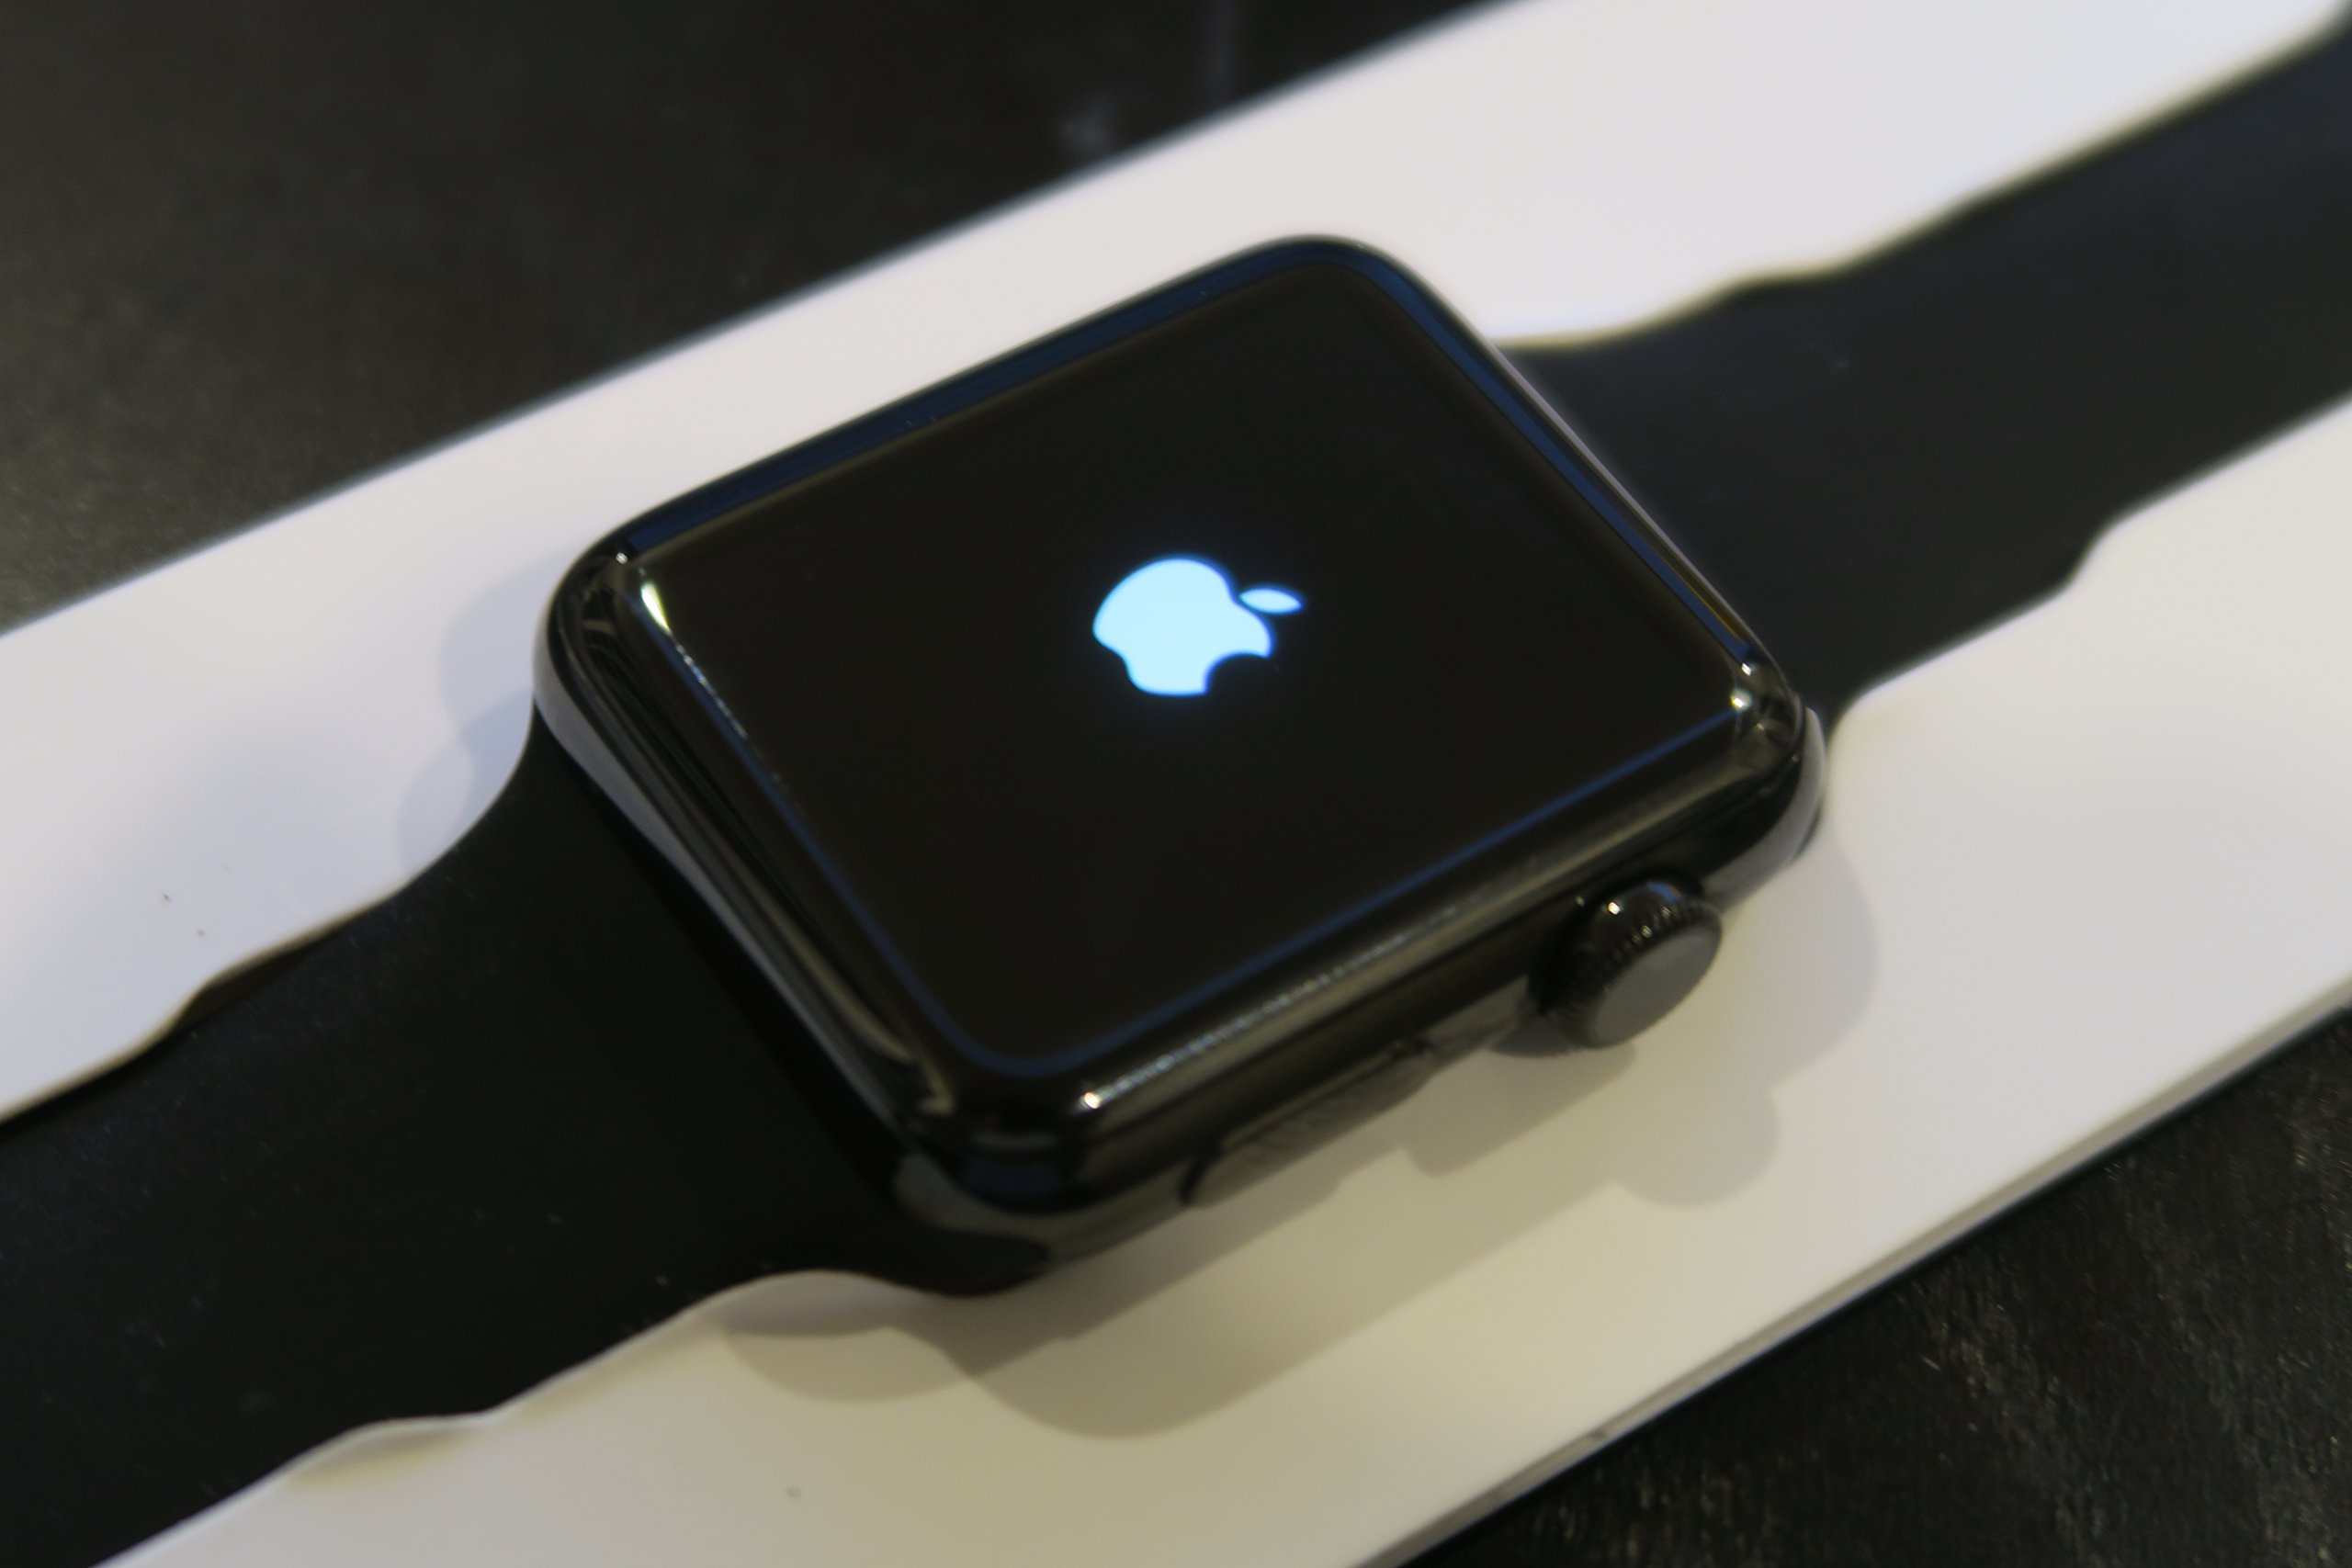 competitive price 1acd3 0c480 Apple Watch Series 2 42mm Smartwatch (Space Black Stainless Steel Case,  Space Black Sport Band)